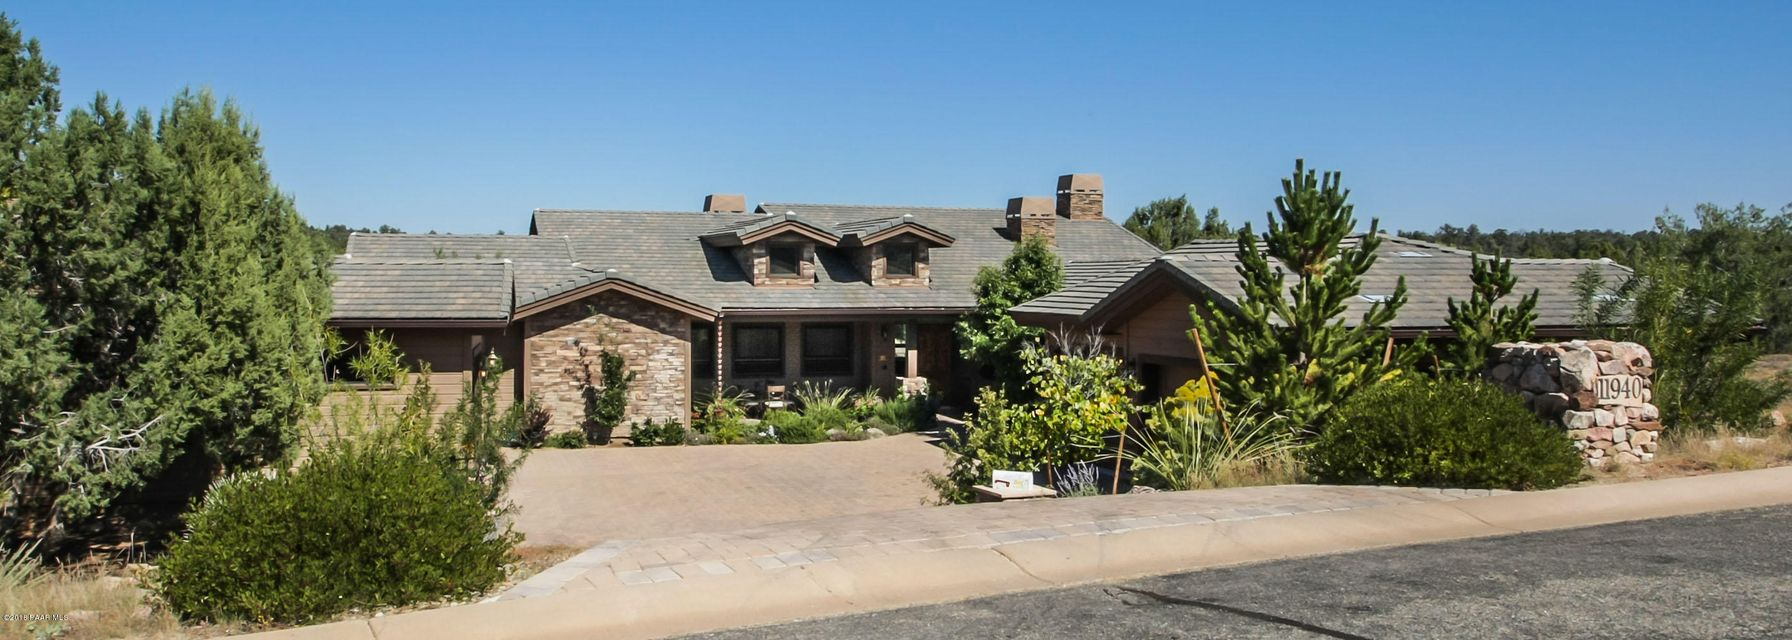 11940 W Six Shooter Road, Prescott Az 86305